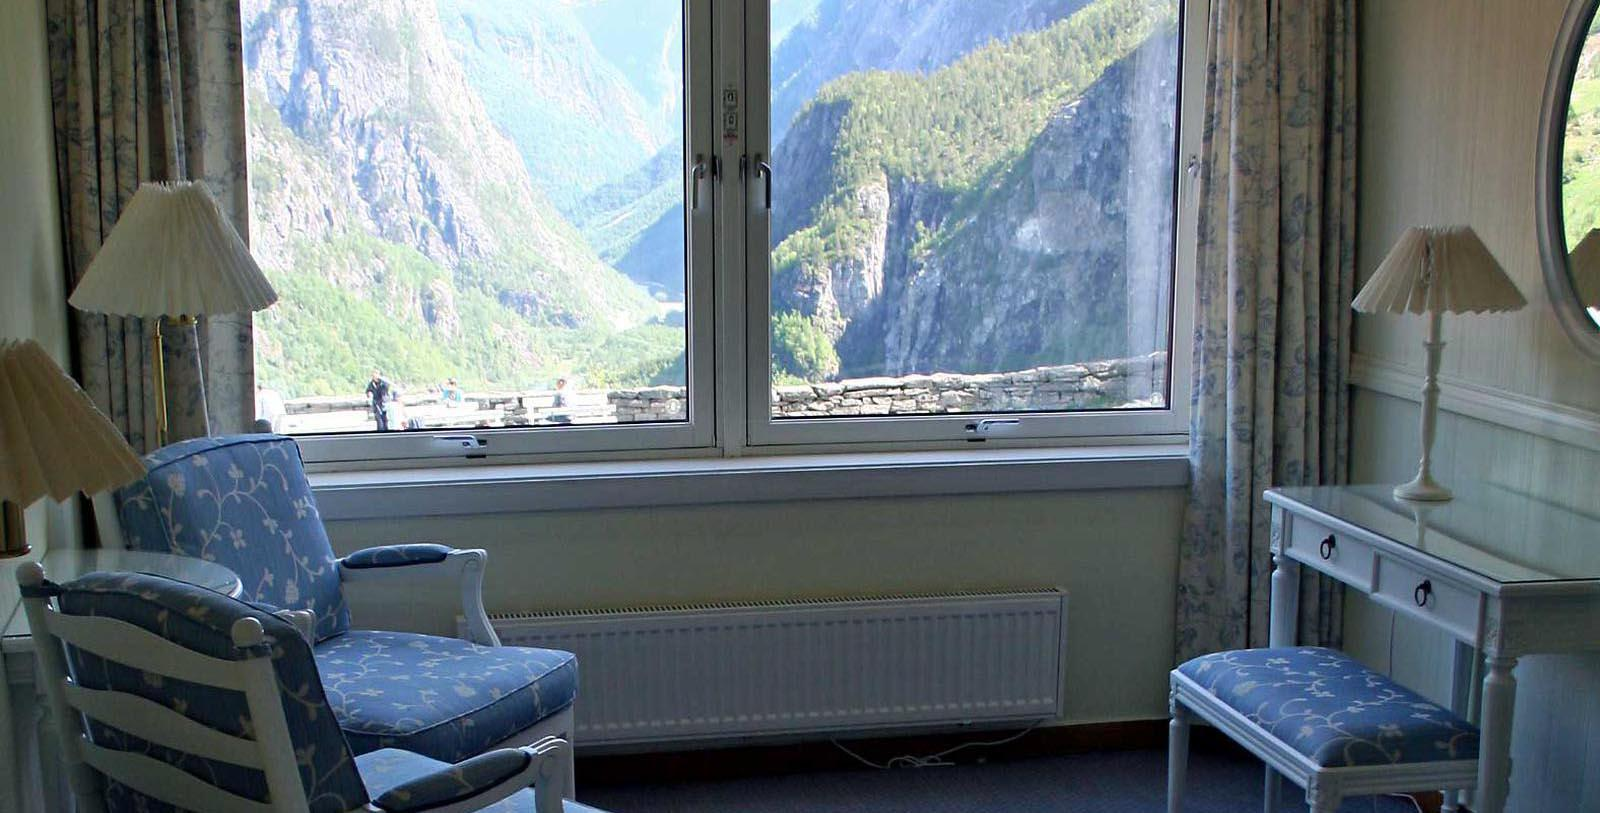 Image of Guestroom Living Area at Stalheim Hotel, 1750, Member of Historic Hotels Worldwide, in Stalheim, Norway, Explore